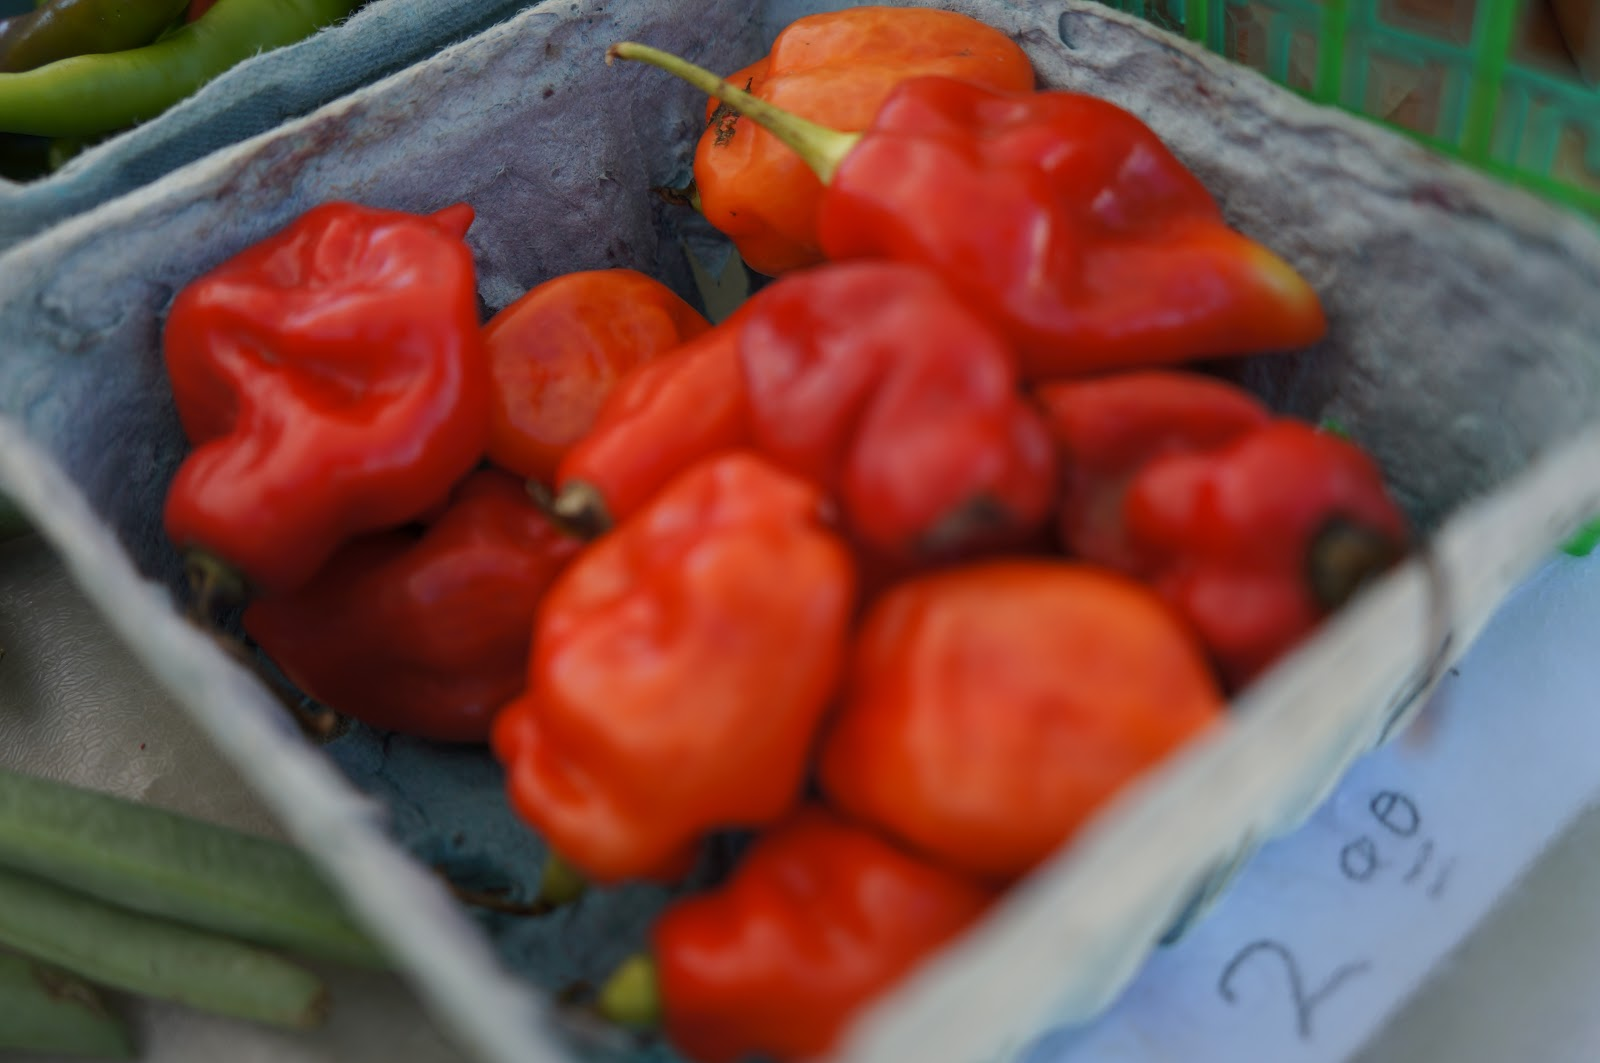 Peppers from Shamba Farms at the West End Farmers Market taken by Knerq